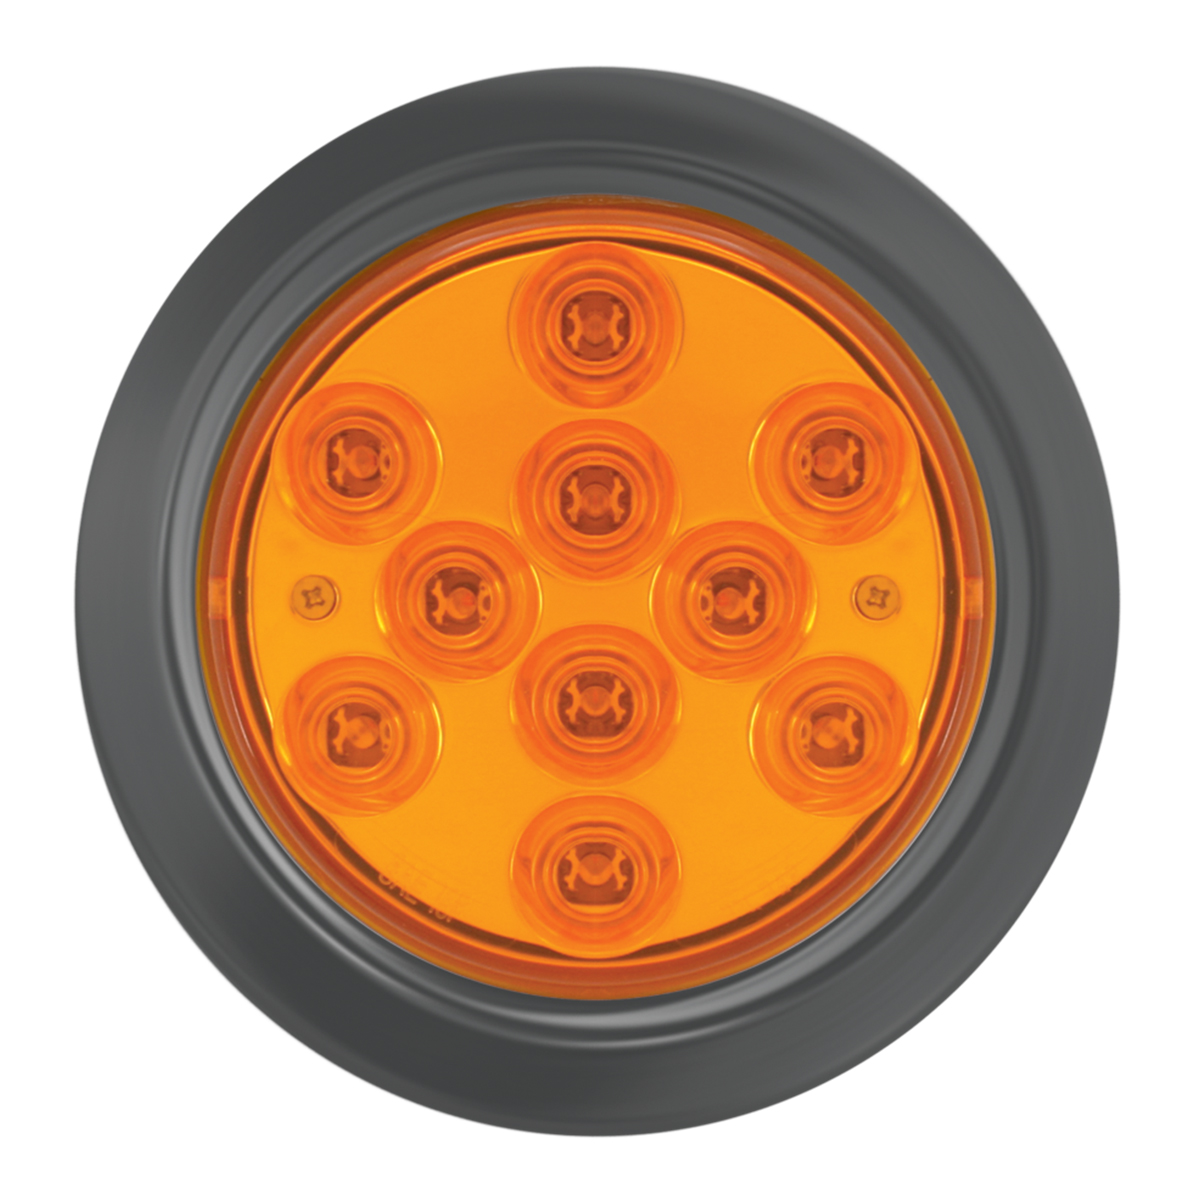 "76844 4"" Mega 10 Plus LED Light w/ Black Rubber Grommet"